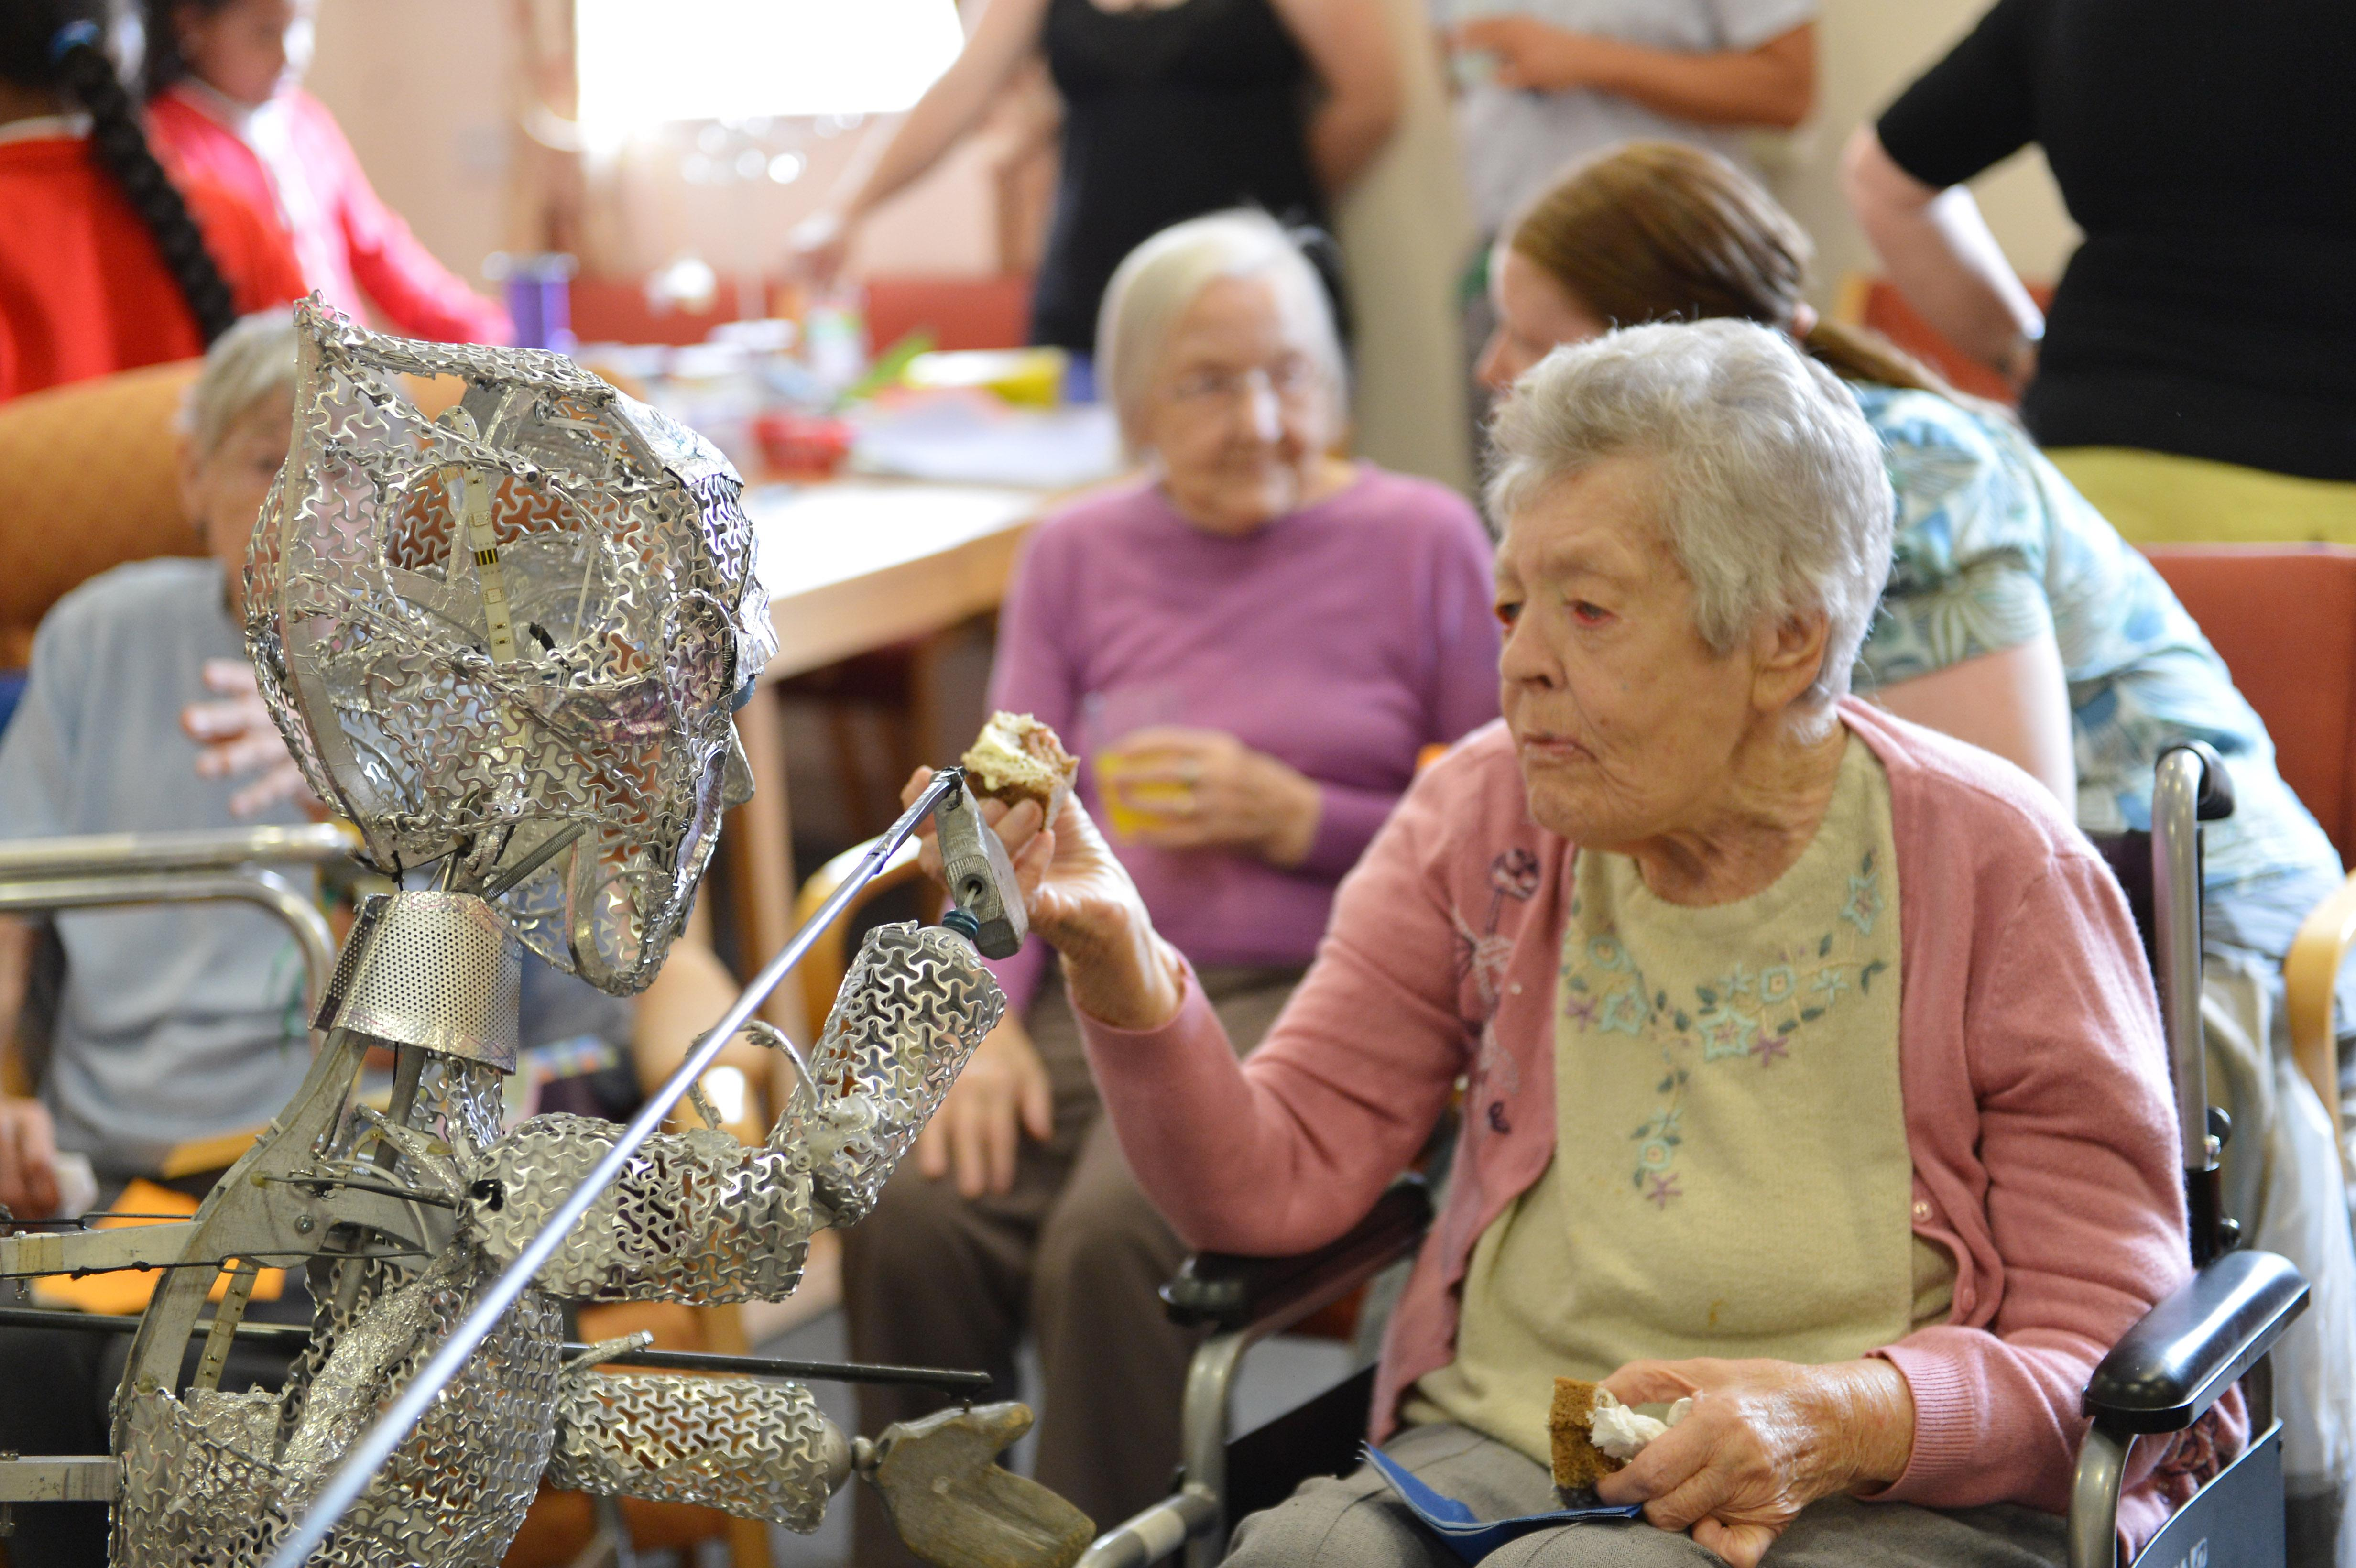 Day 2: Imagine - The Arts and Older People